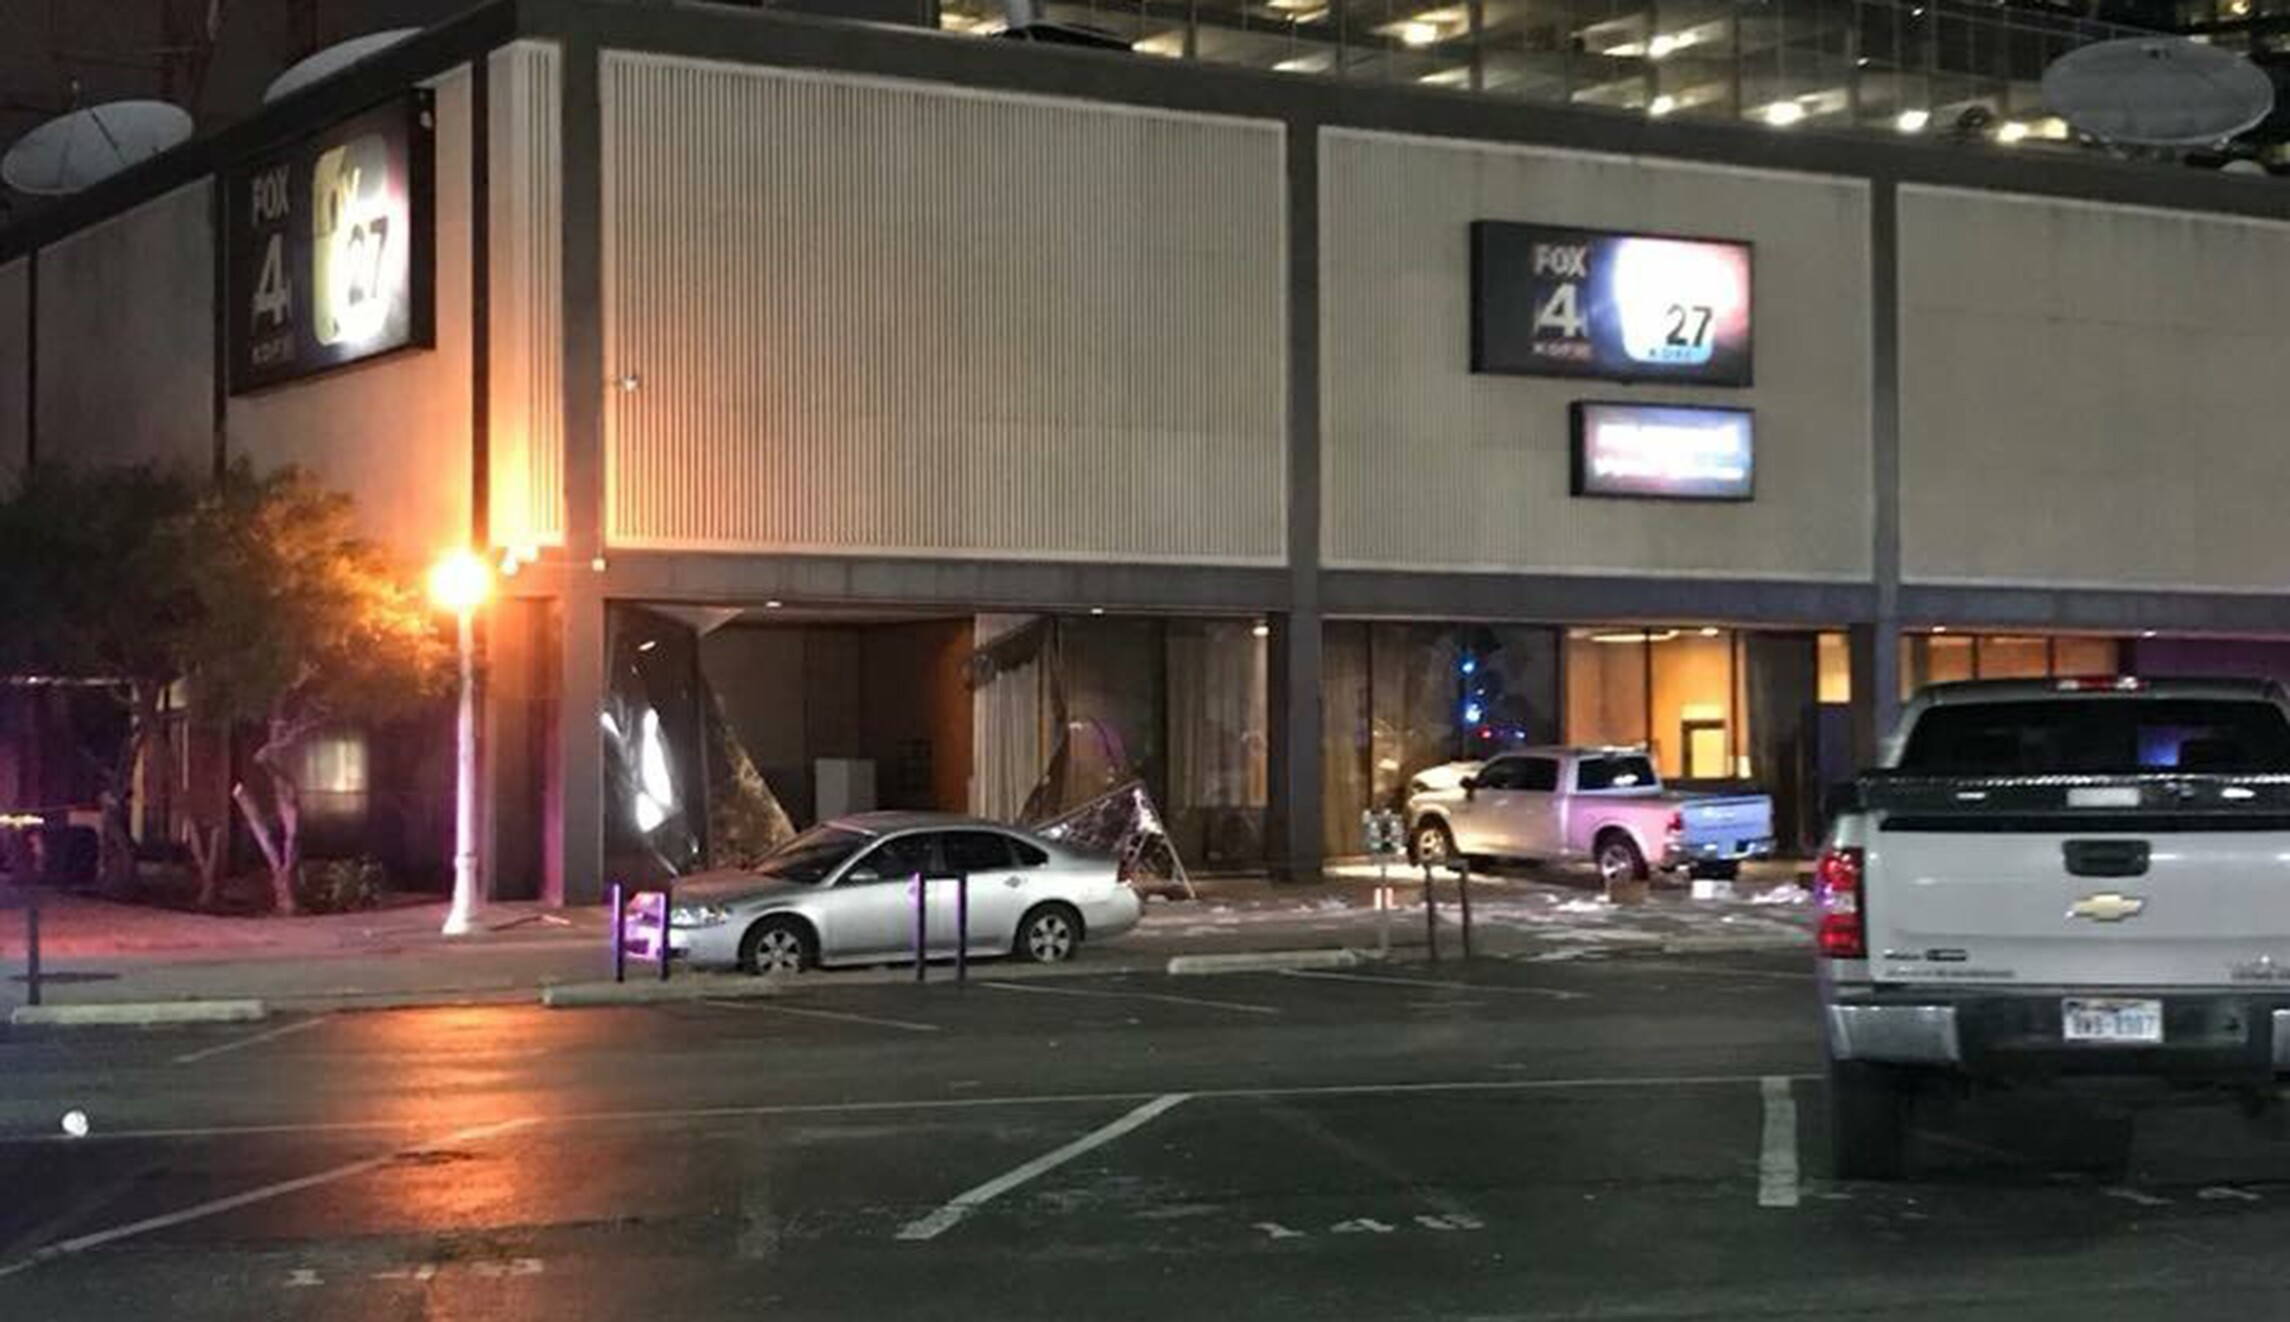 Man Rams Pickup Truck Into Tv Station Building In Dallas